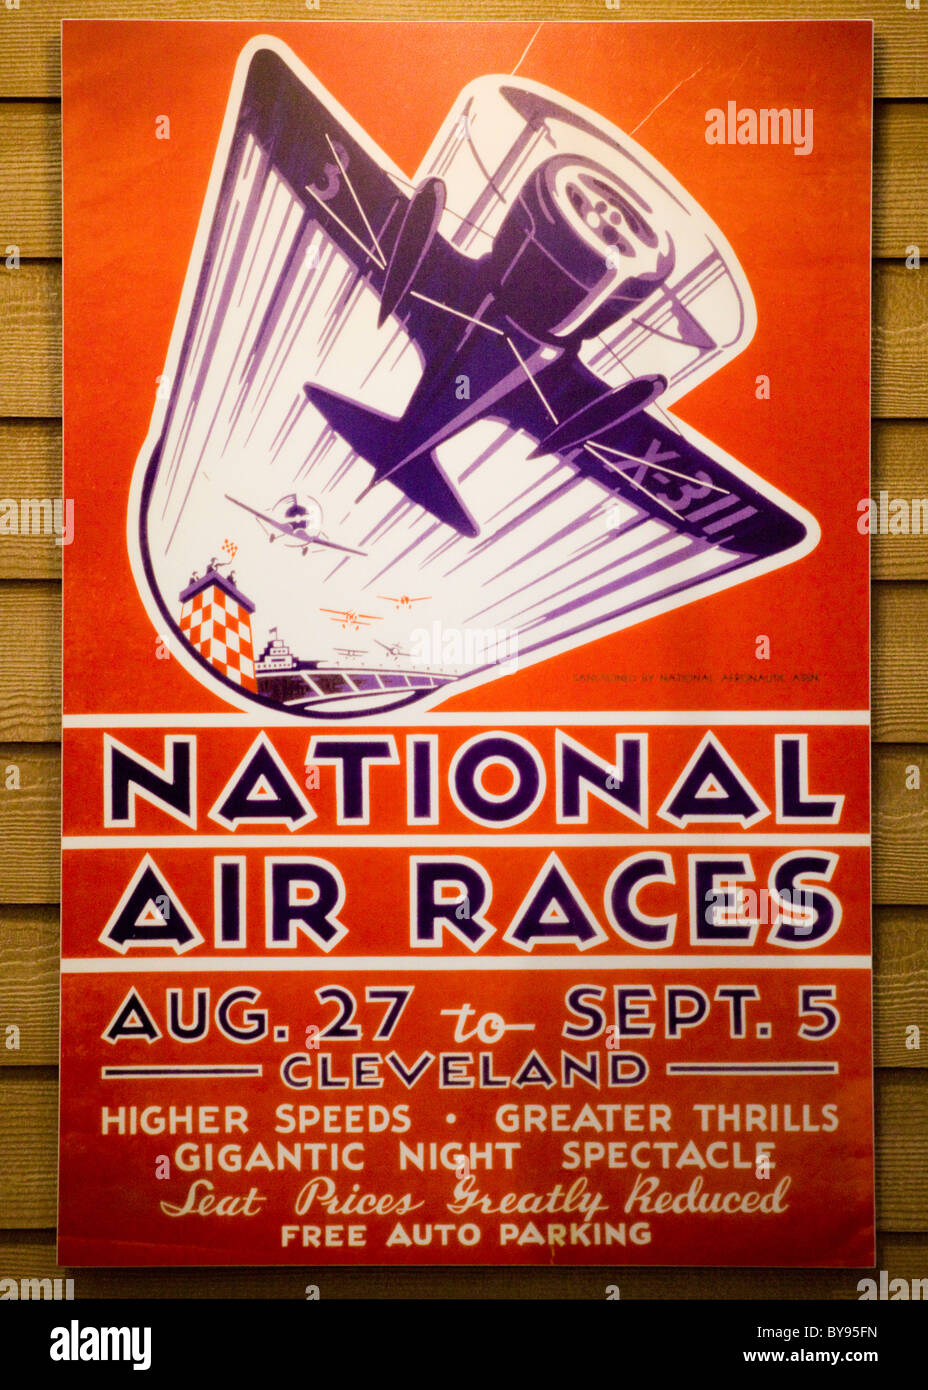 Antique early 20th century National Air Races poster - USA - Stock Image